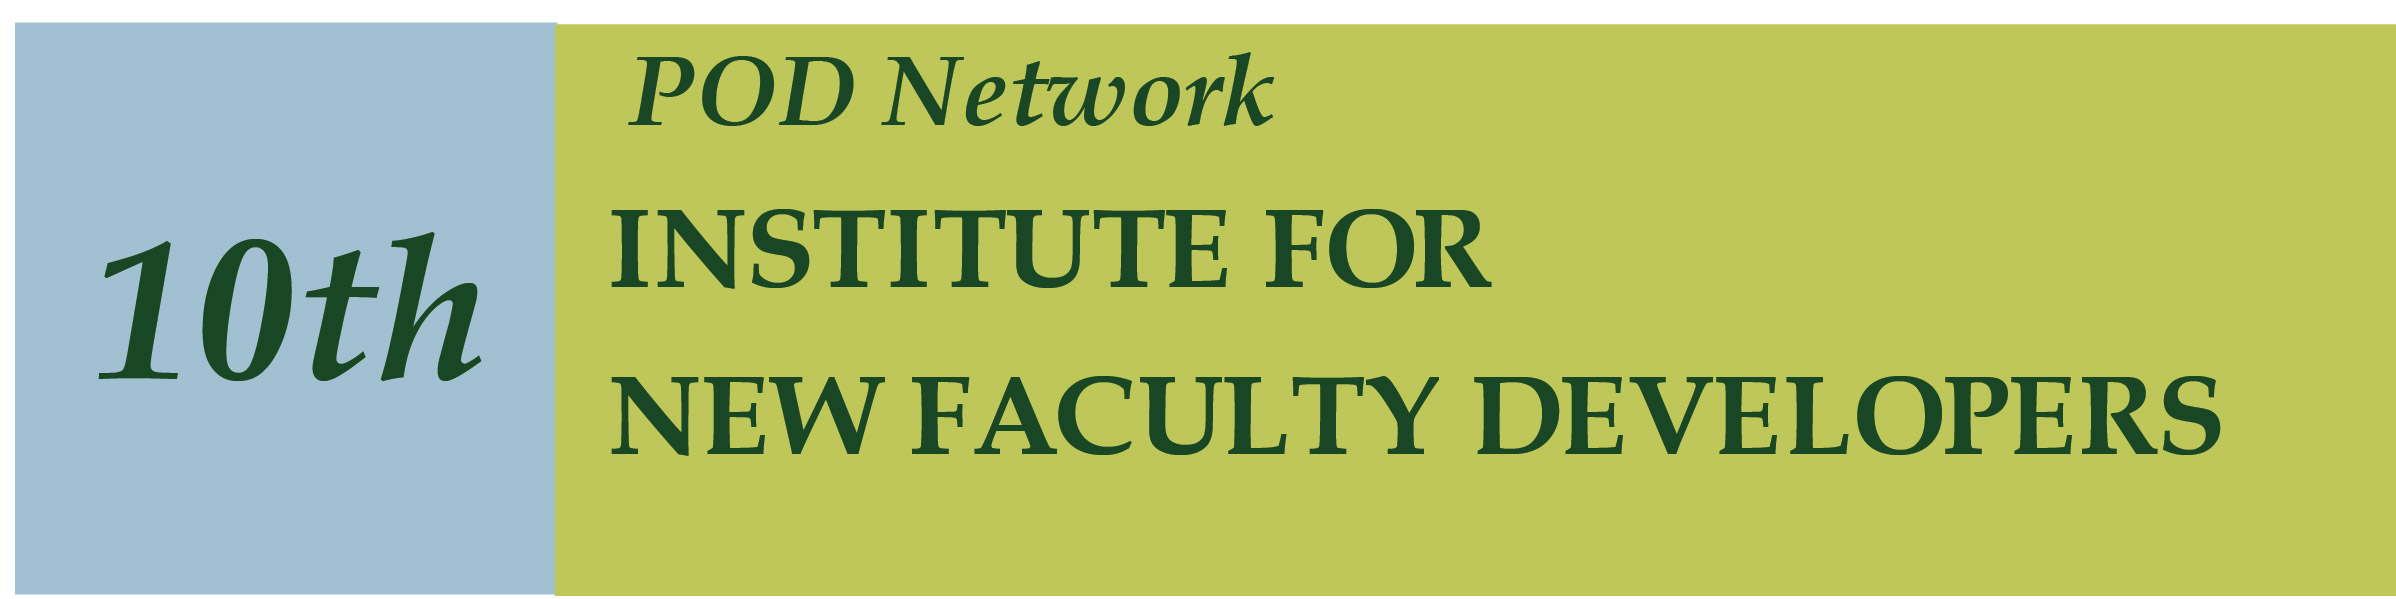 10th Institute for New Faculty Developers